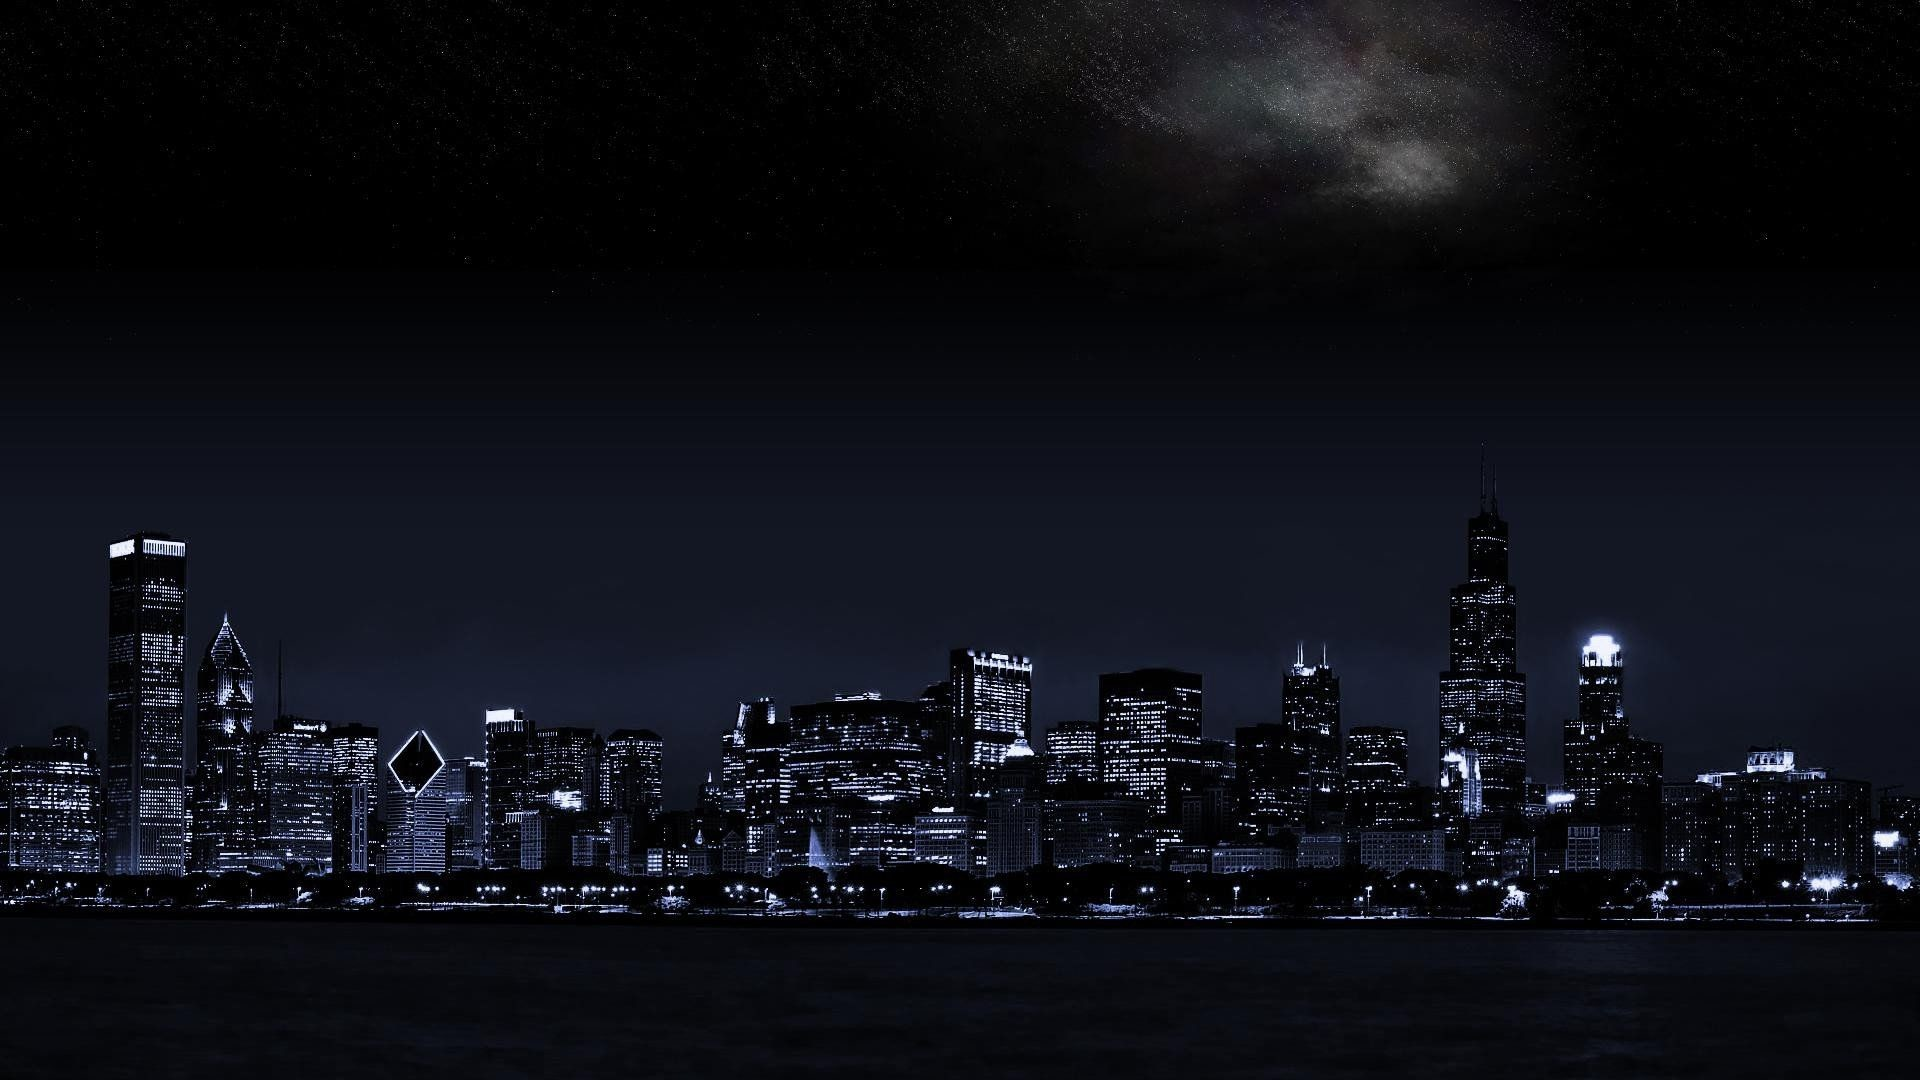 72+ Night City Wallpapers on WallpaperPlay